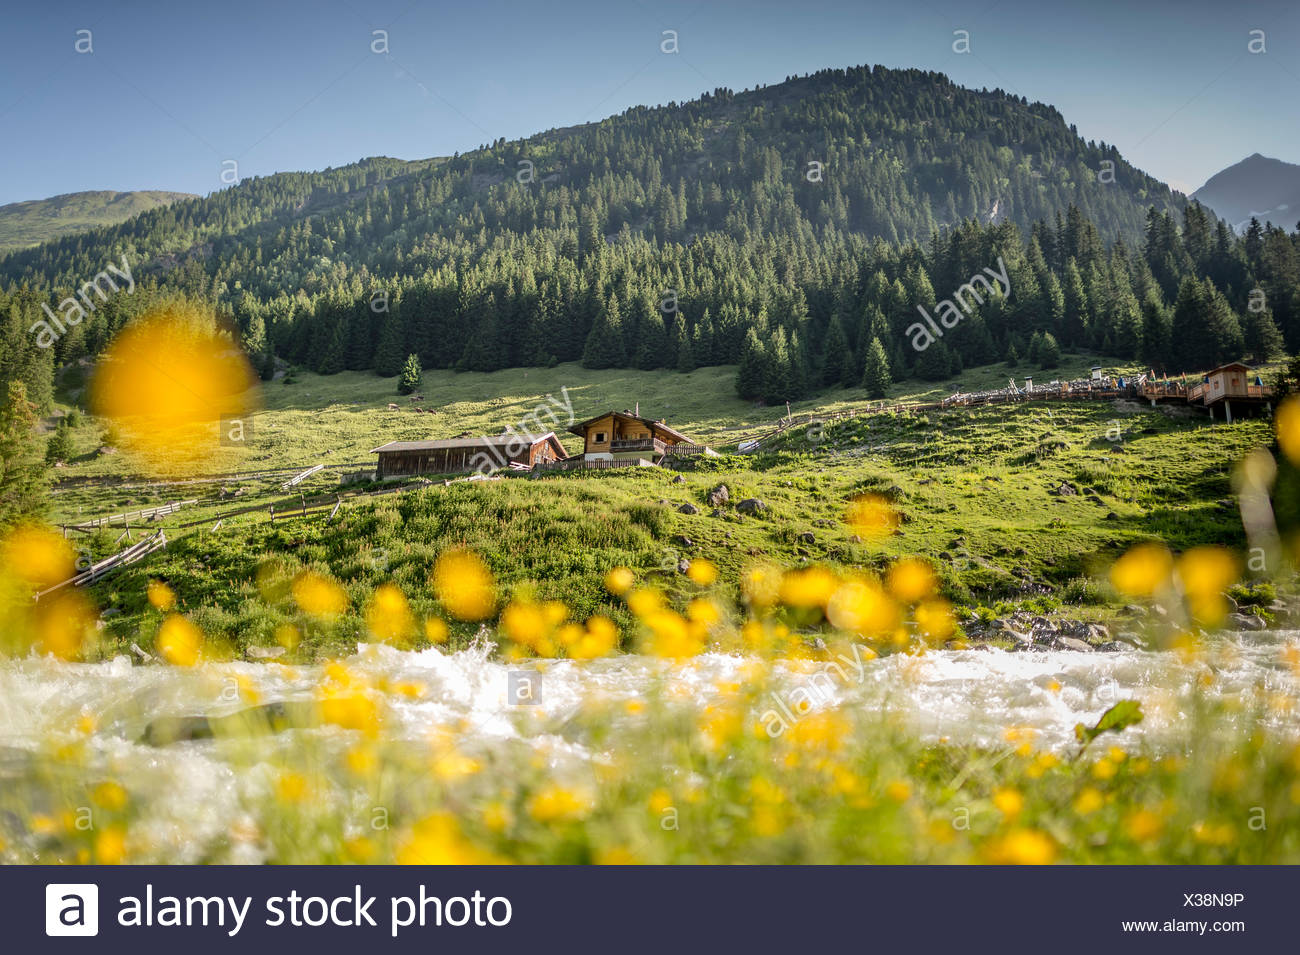 Buttercups (Ranunculus) in front of a mountain stream, mountain guesthouse at back, Grawa Alm, mountain pasture, Stubai Valley - Stock Image